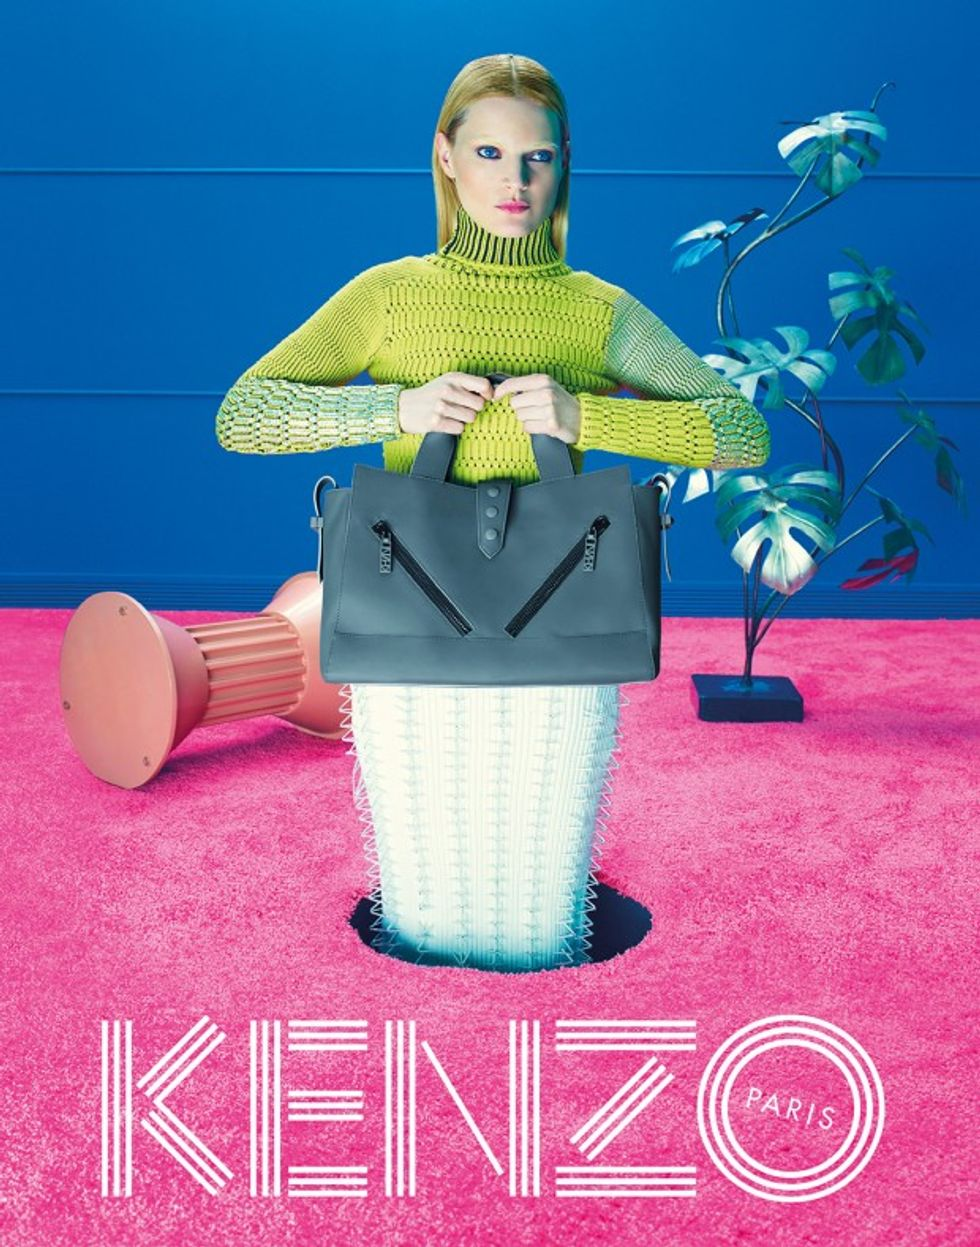 Trip the Light Fantastic With Kenzo's New David Lynch-Inspired Campaign